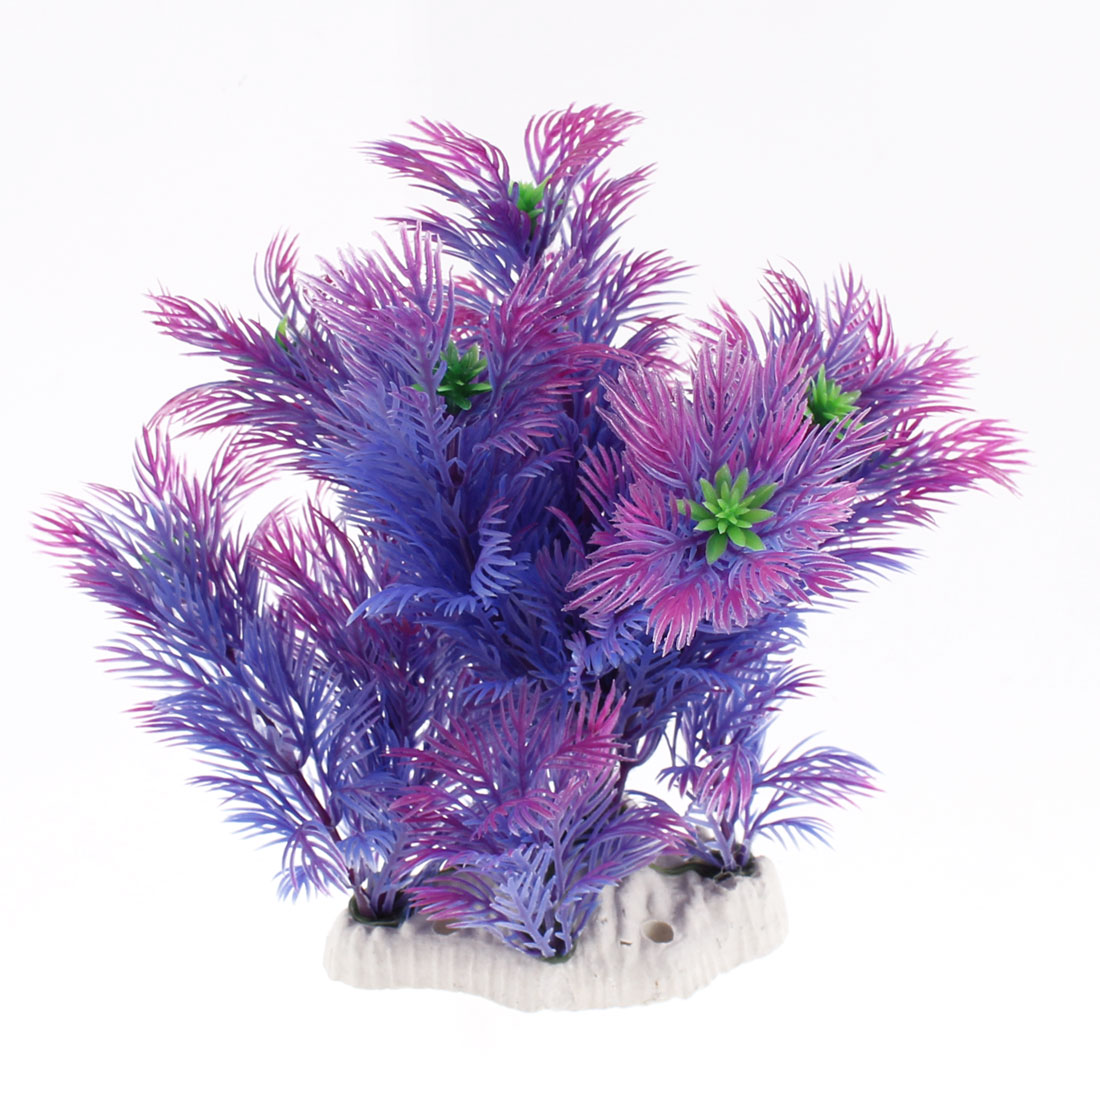 Aquarium Plastic Emulational Grass Plant Decor Purple Green